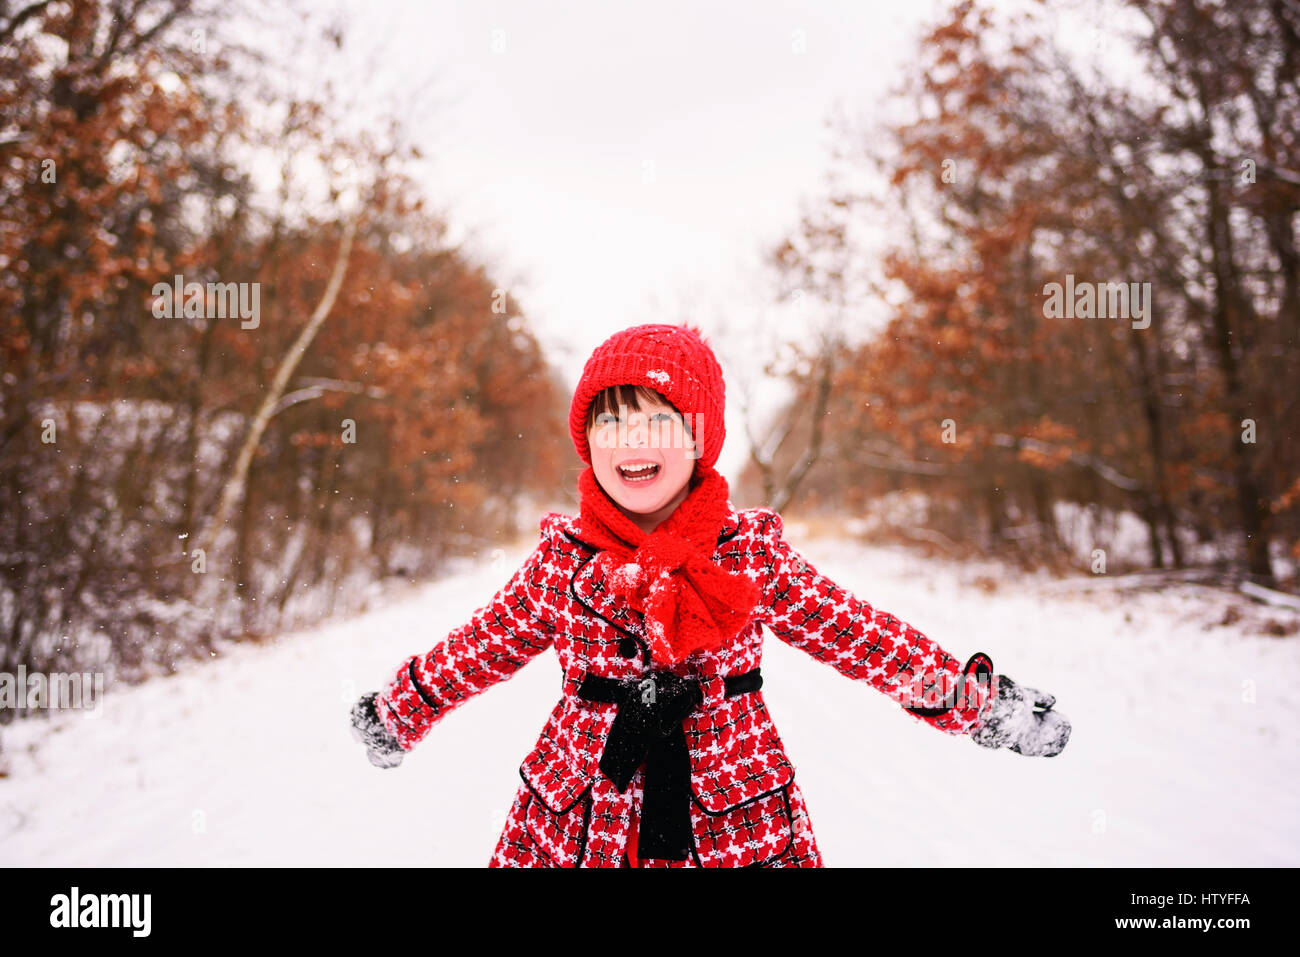 Girl standing in winter forest with arms outstretched Banque D'Images